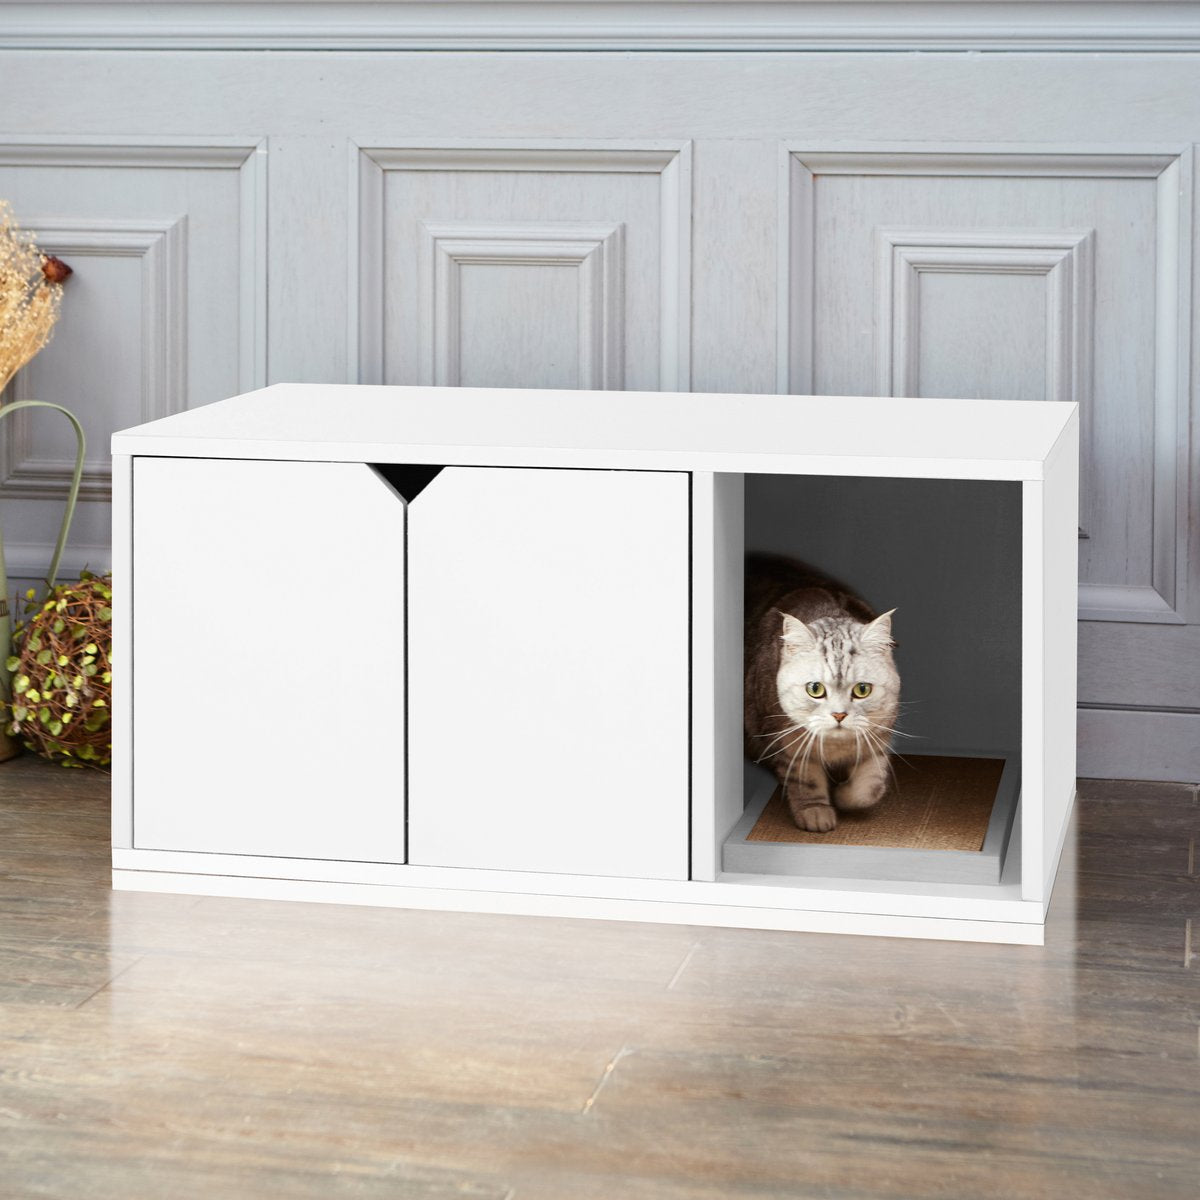 Eco Friendly Non Toxic Cat Litter Box Hider From Way